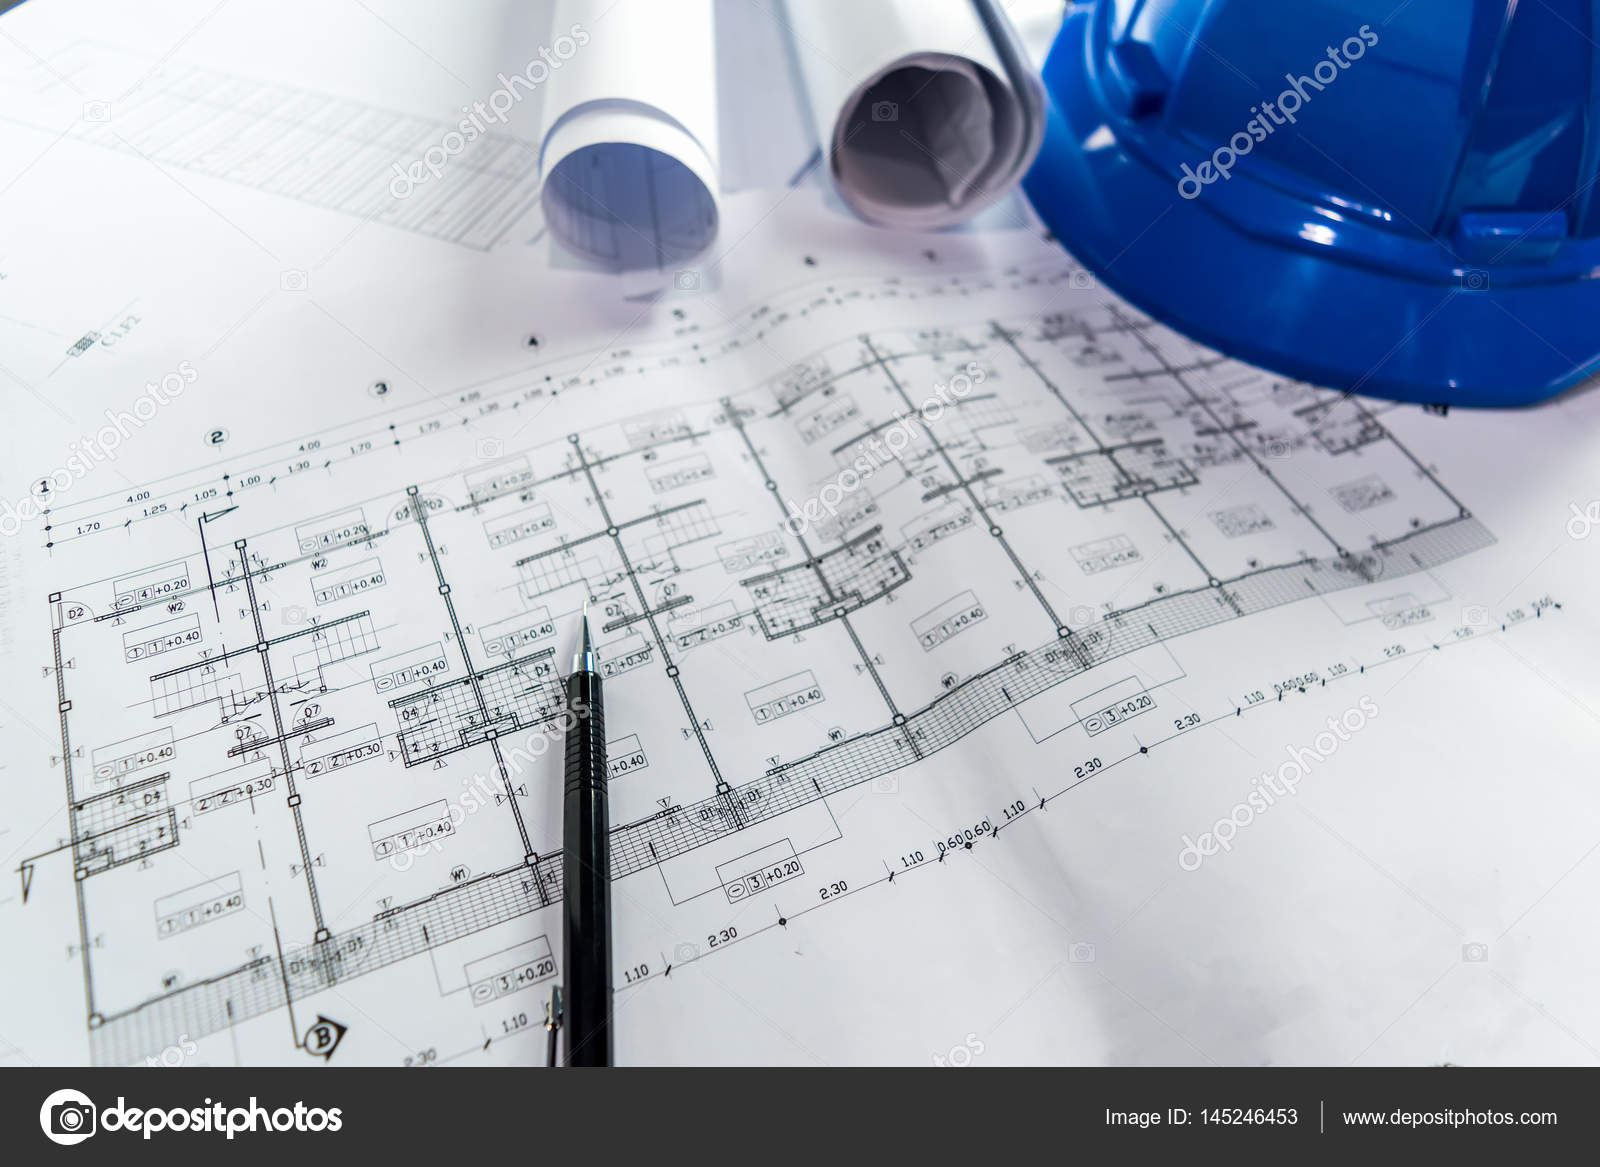 Engineering diagram blueprint paper drafting project sketch stock engineering diagram blueprint paper drafting project sketch stock photo malvernweather Choice Image